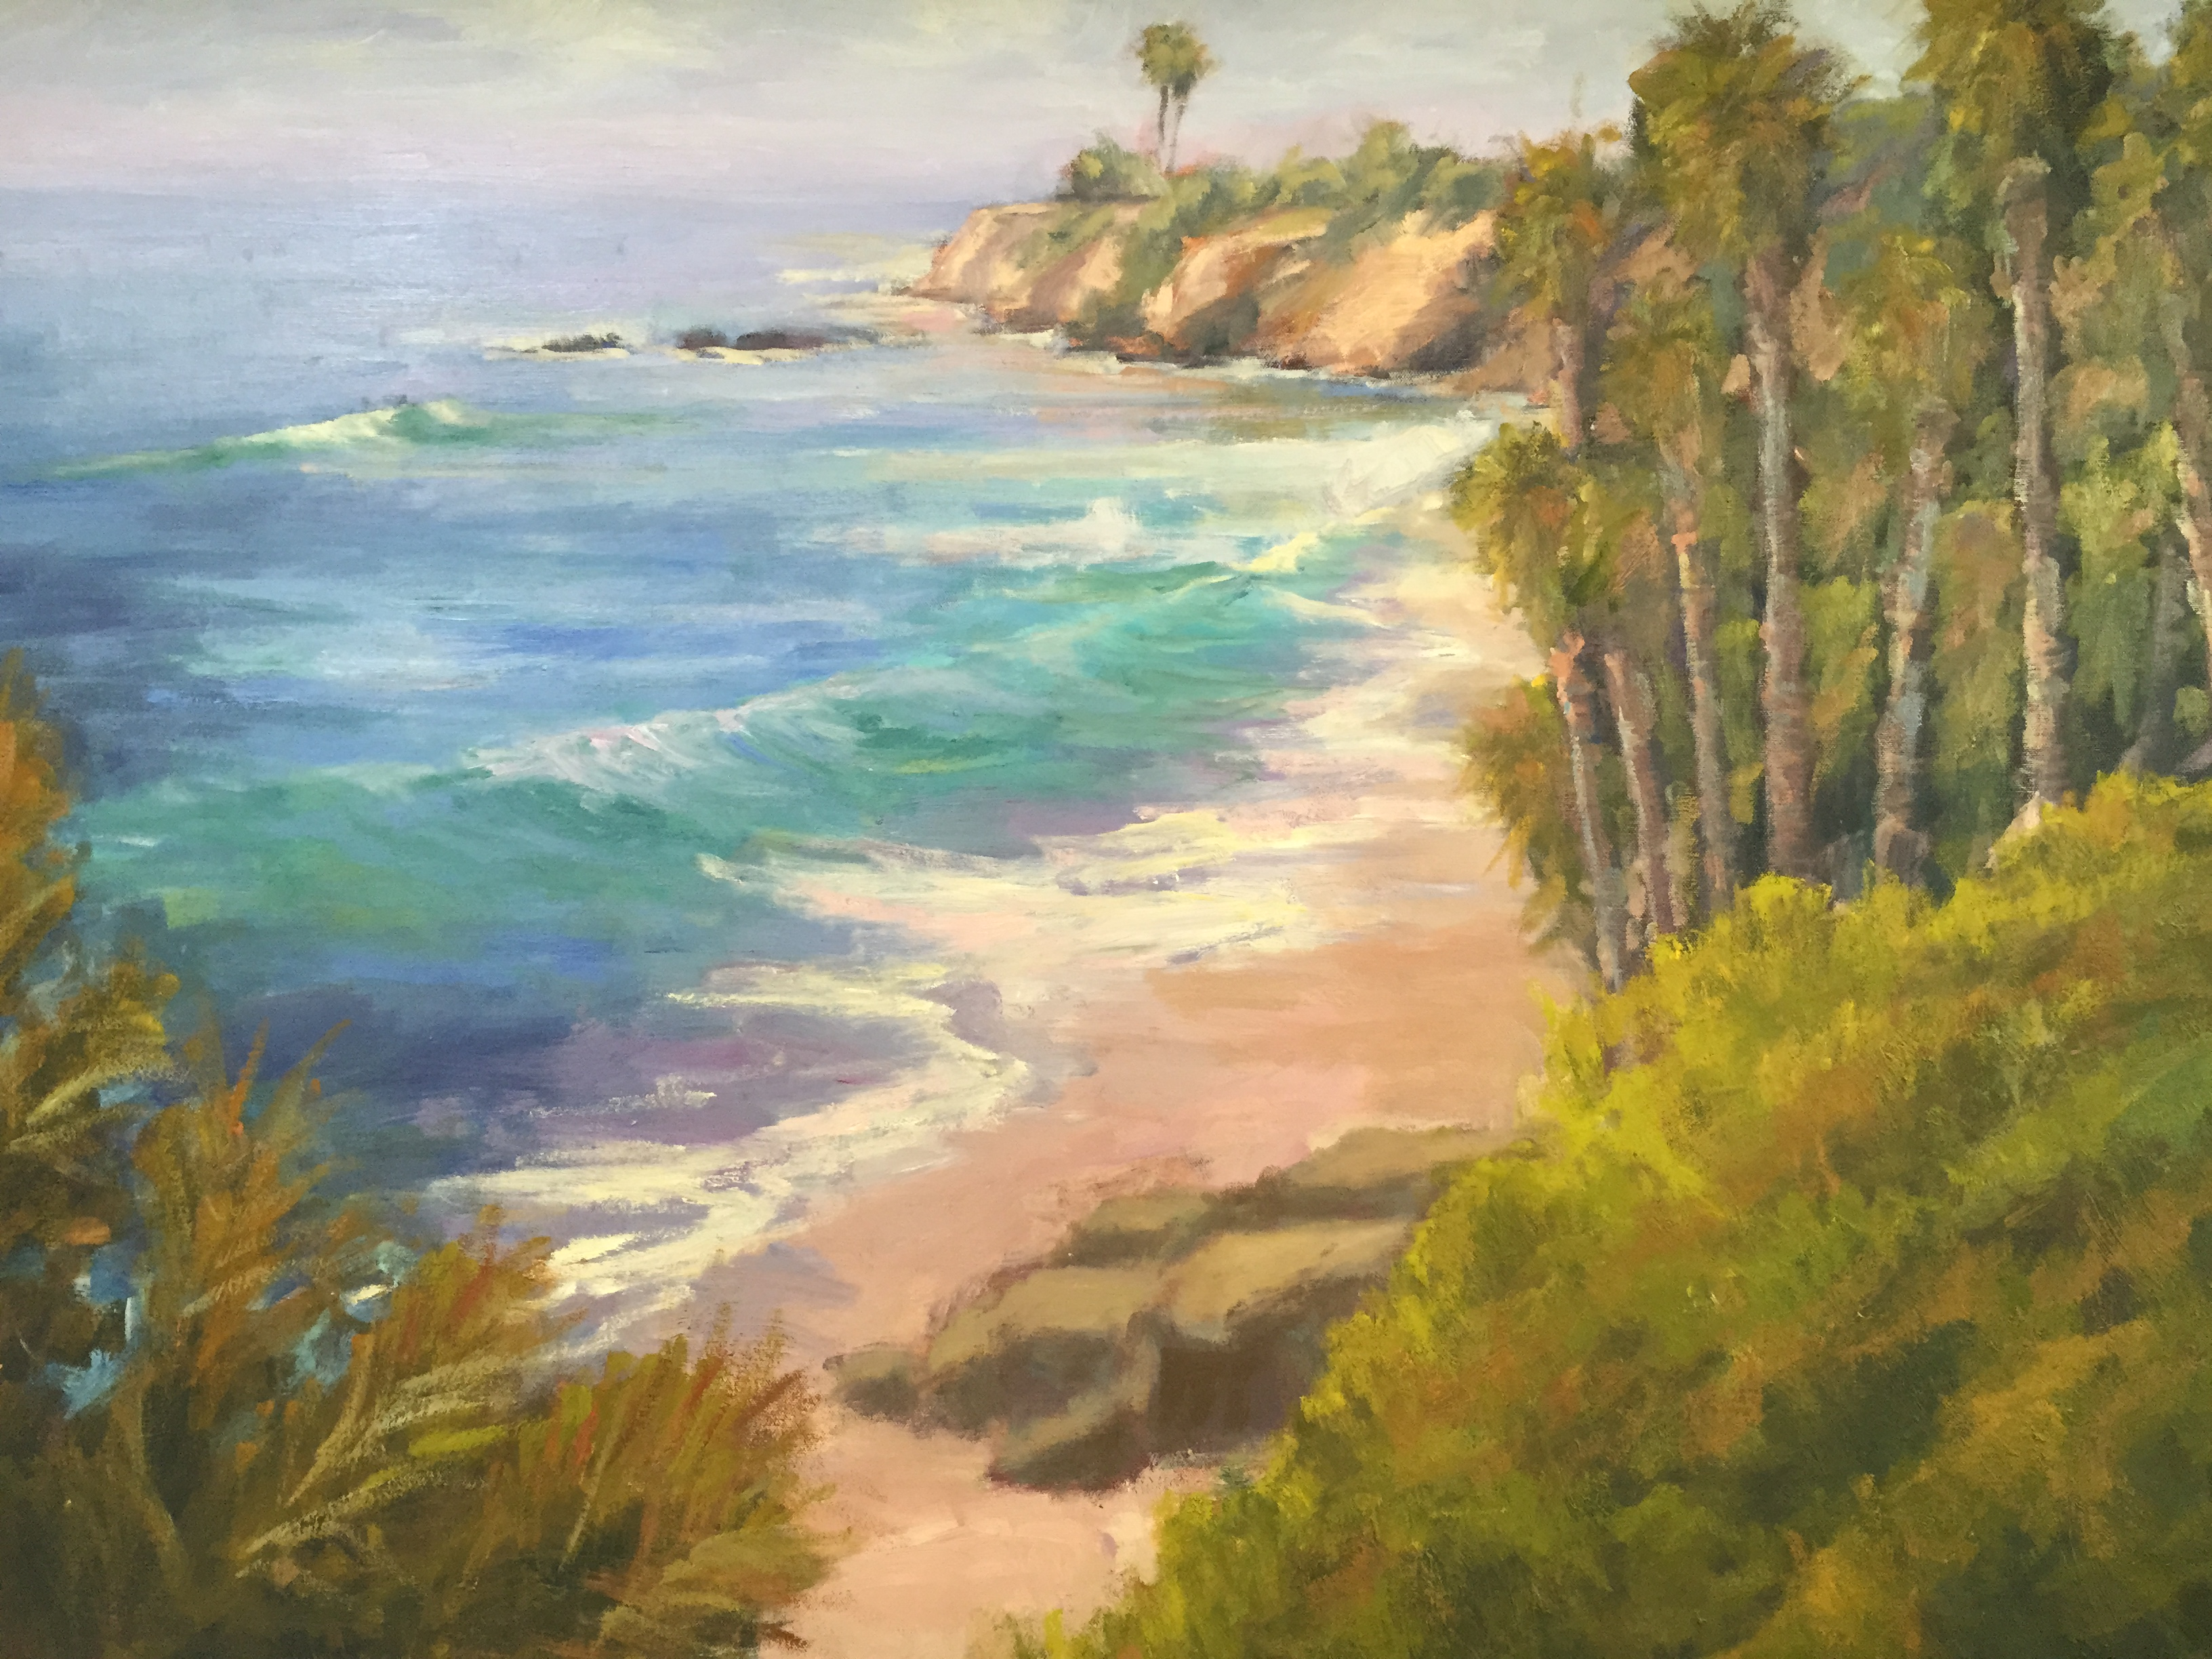 California Coast 36x48 Original Oil Painting By Kathleen M